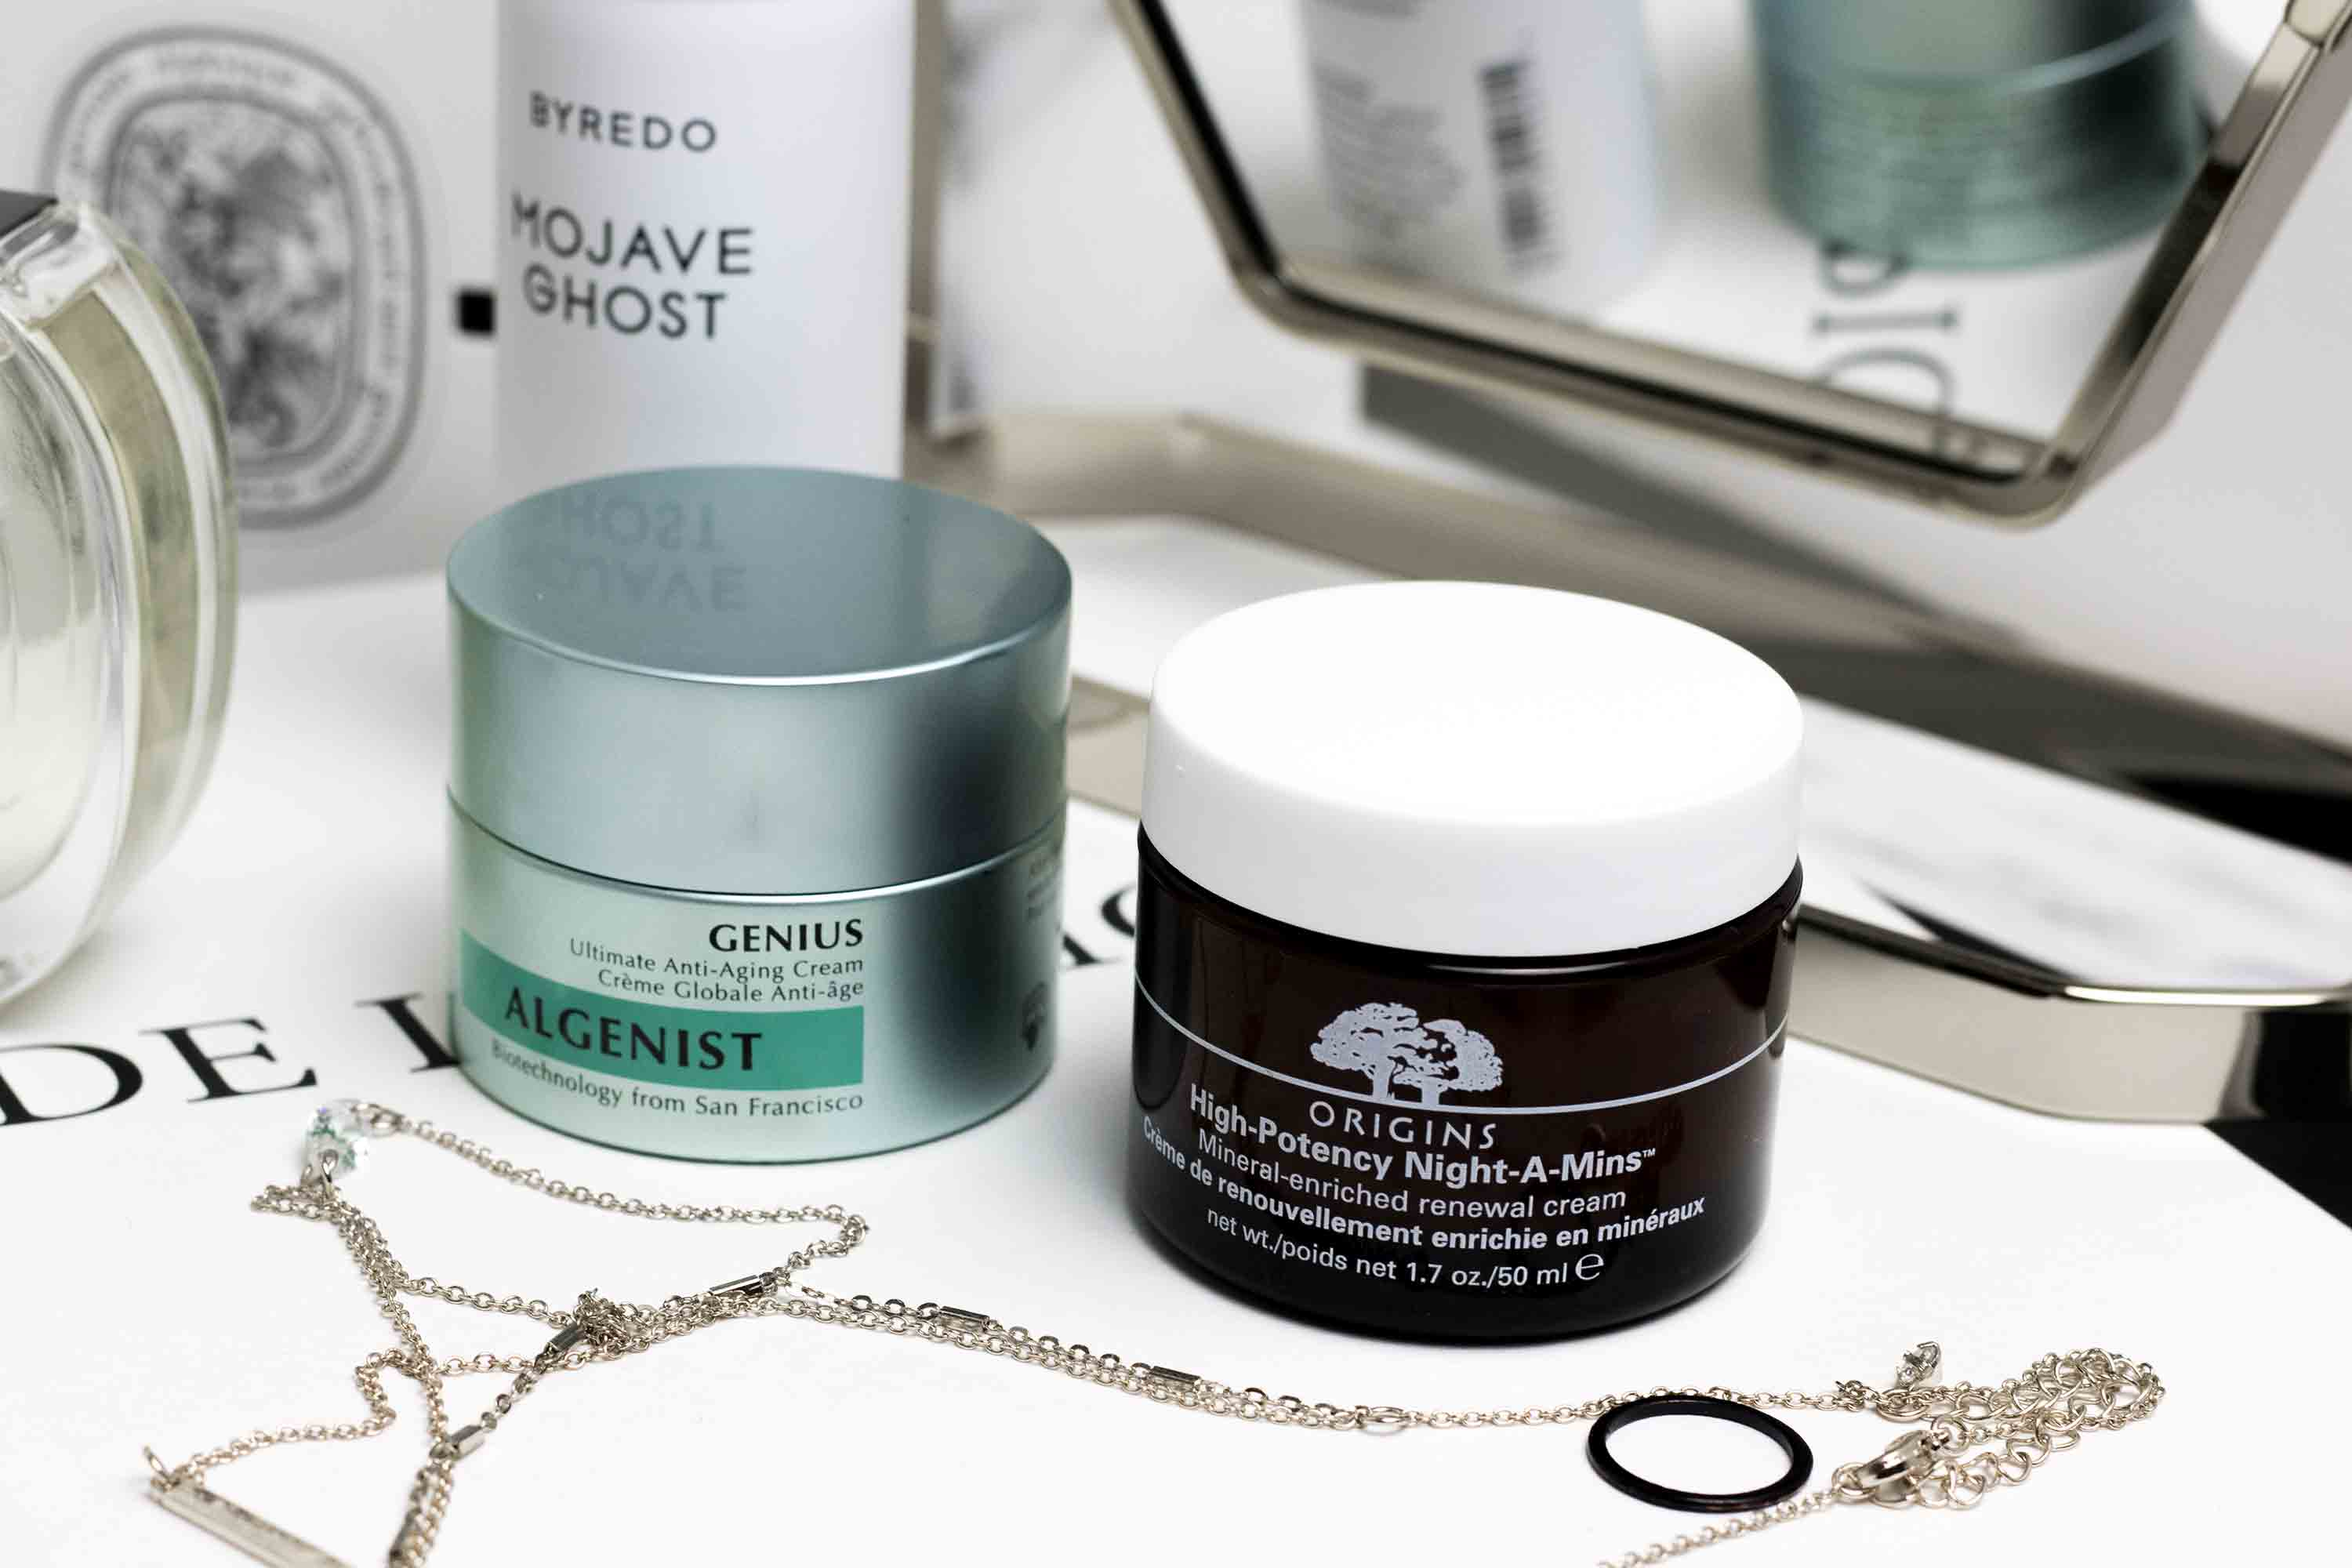 Origins Night-A-Mins and Algenist Genius Moisturizer